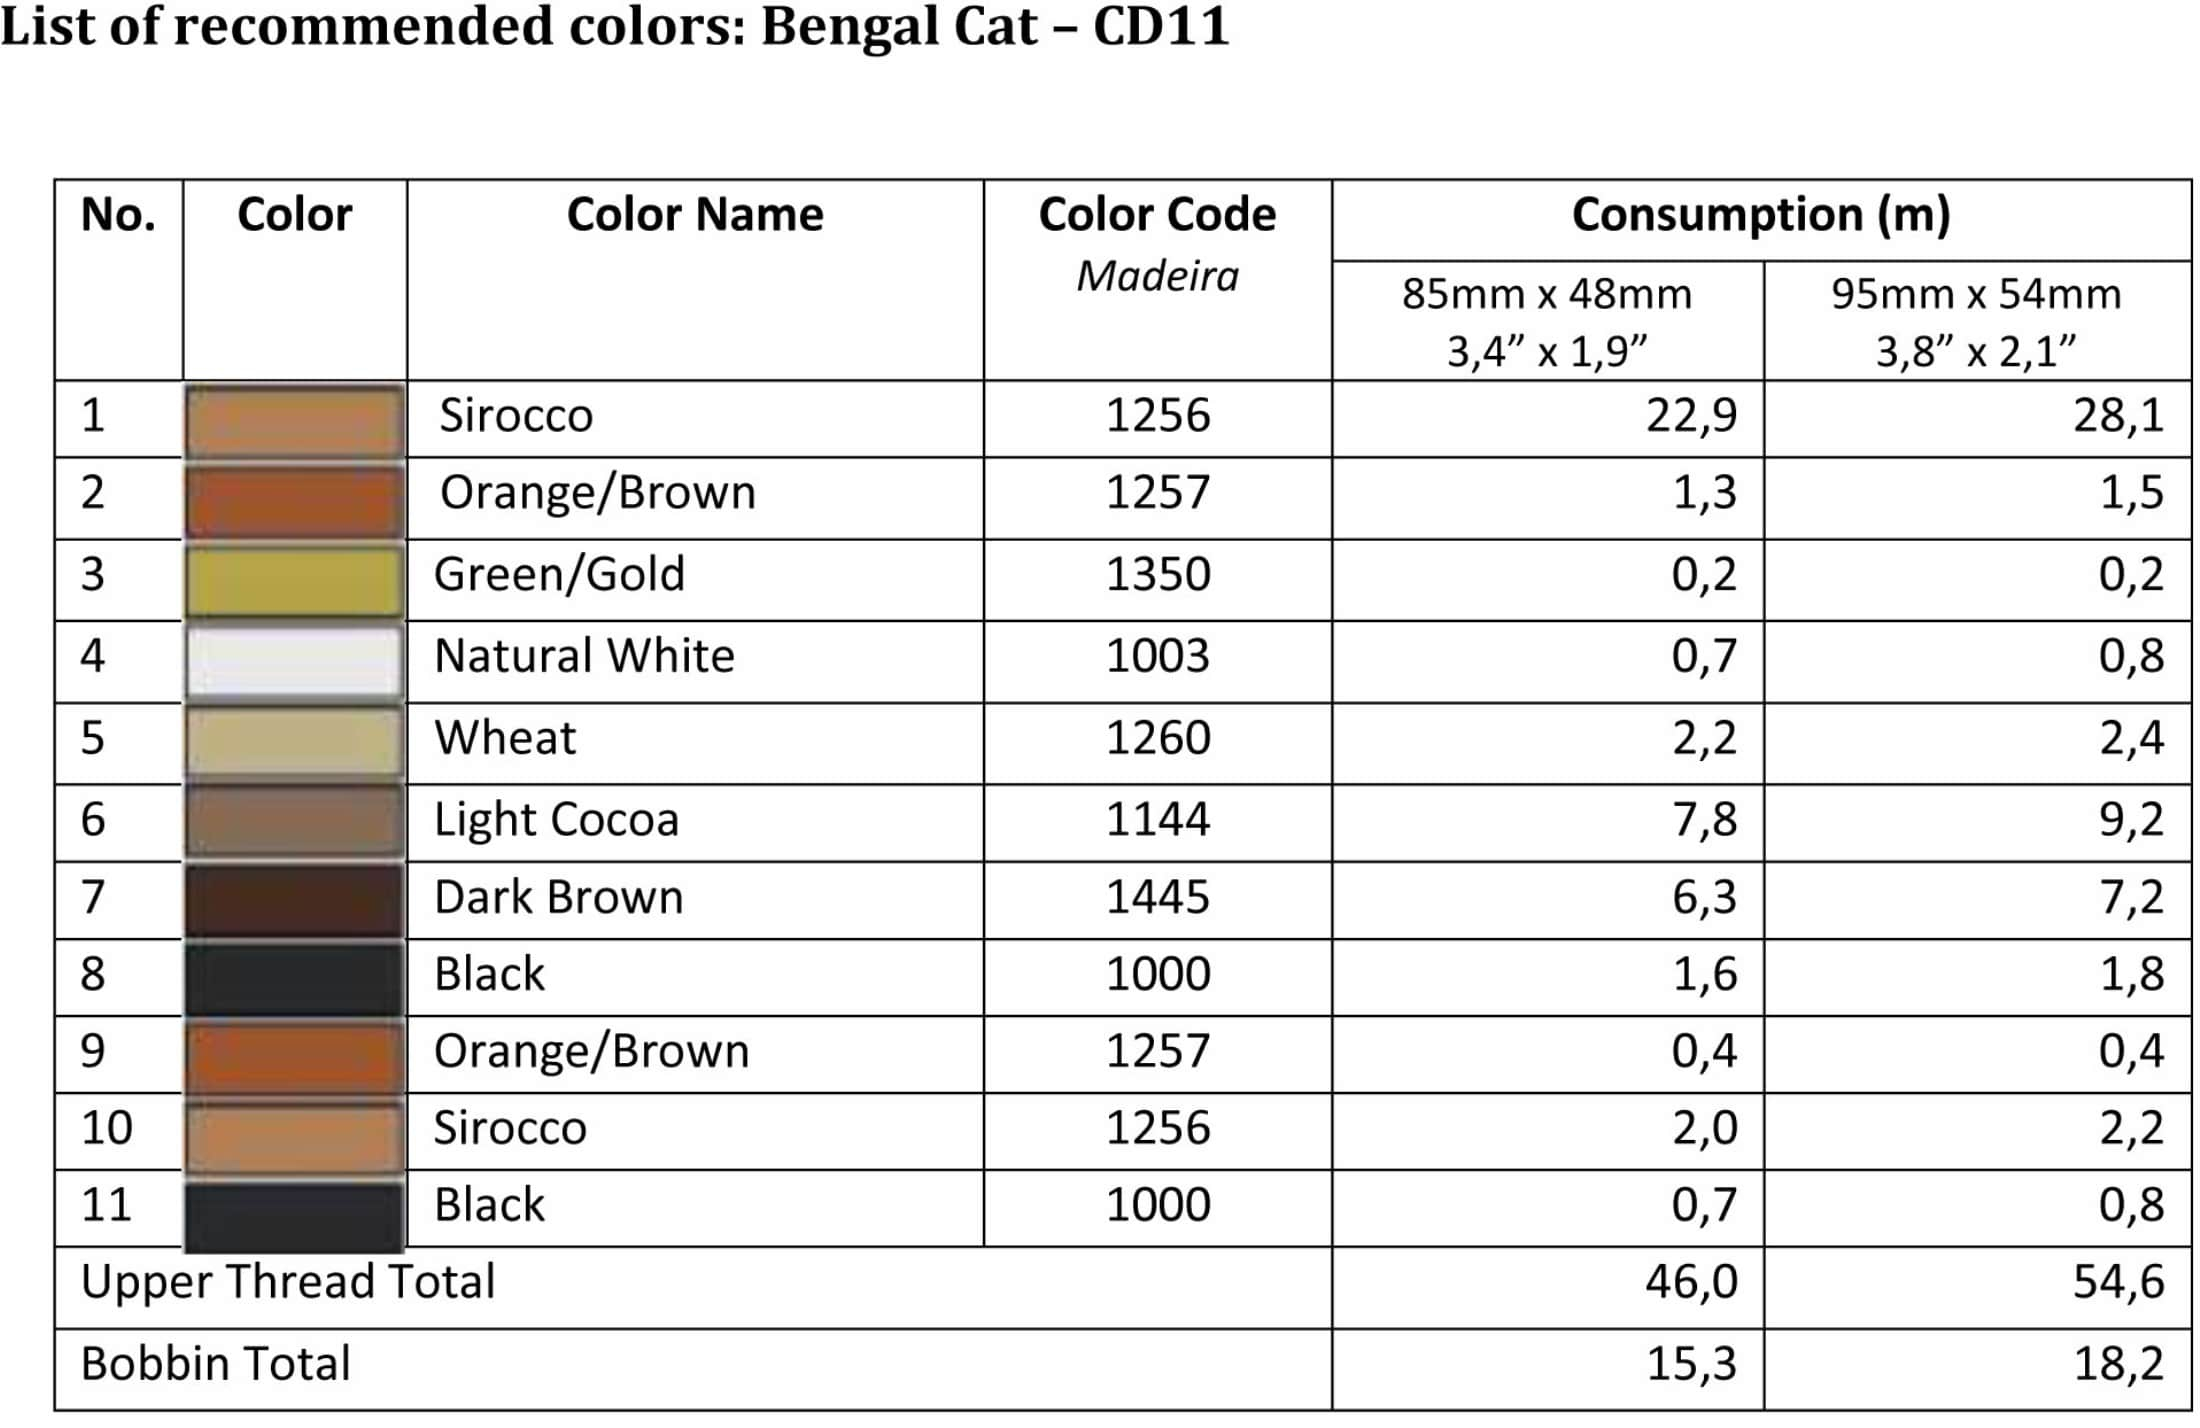 List of recommended colors - CD11